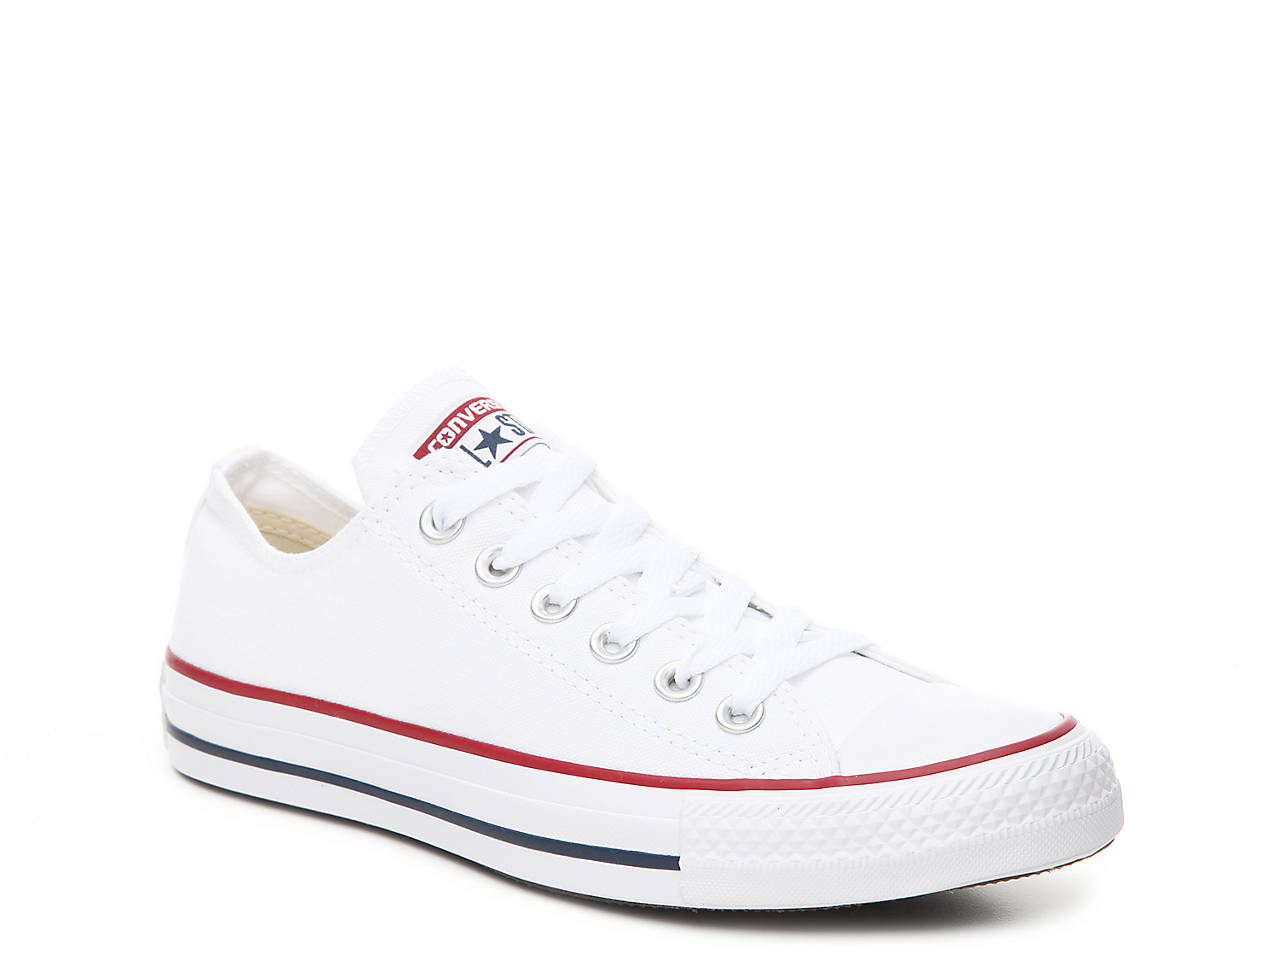 4e9c2255c0e2 Converse Chuck Taylor All Star Sneaker - Women s Women s Shoes